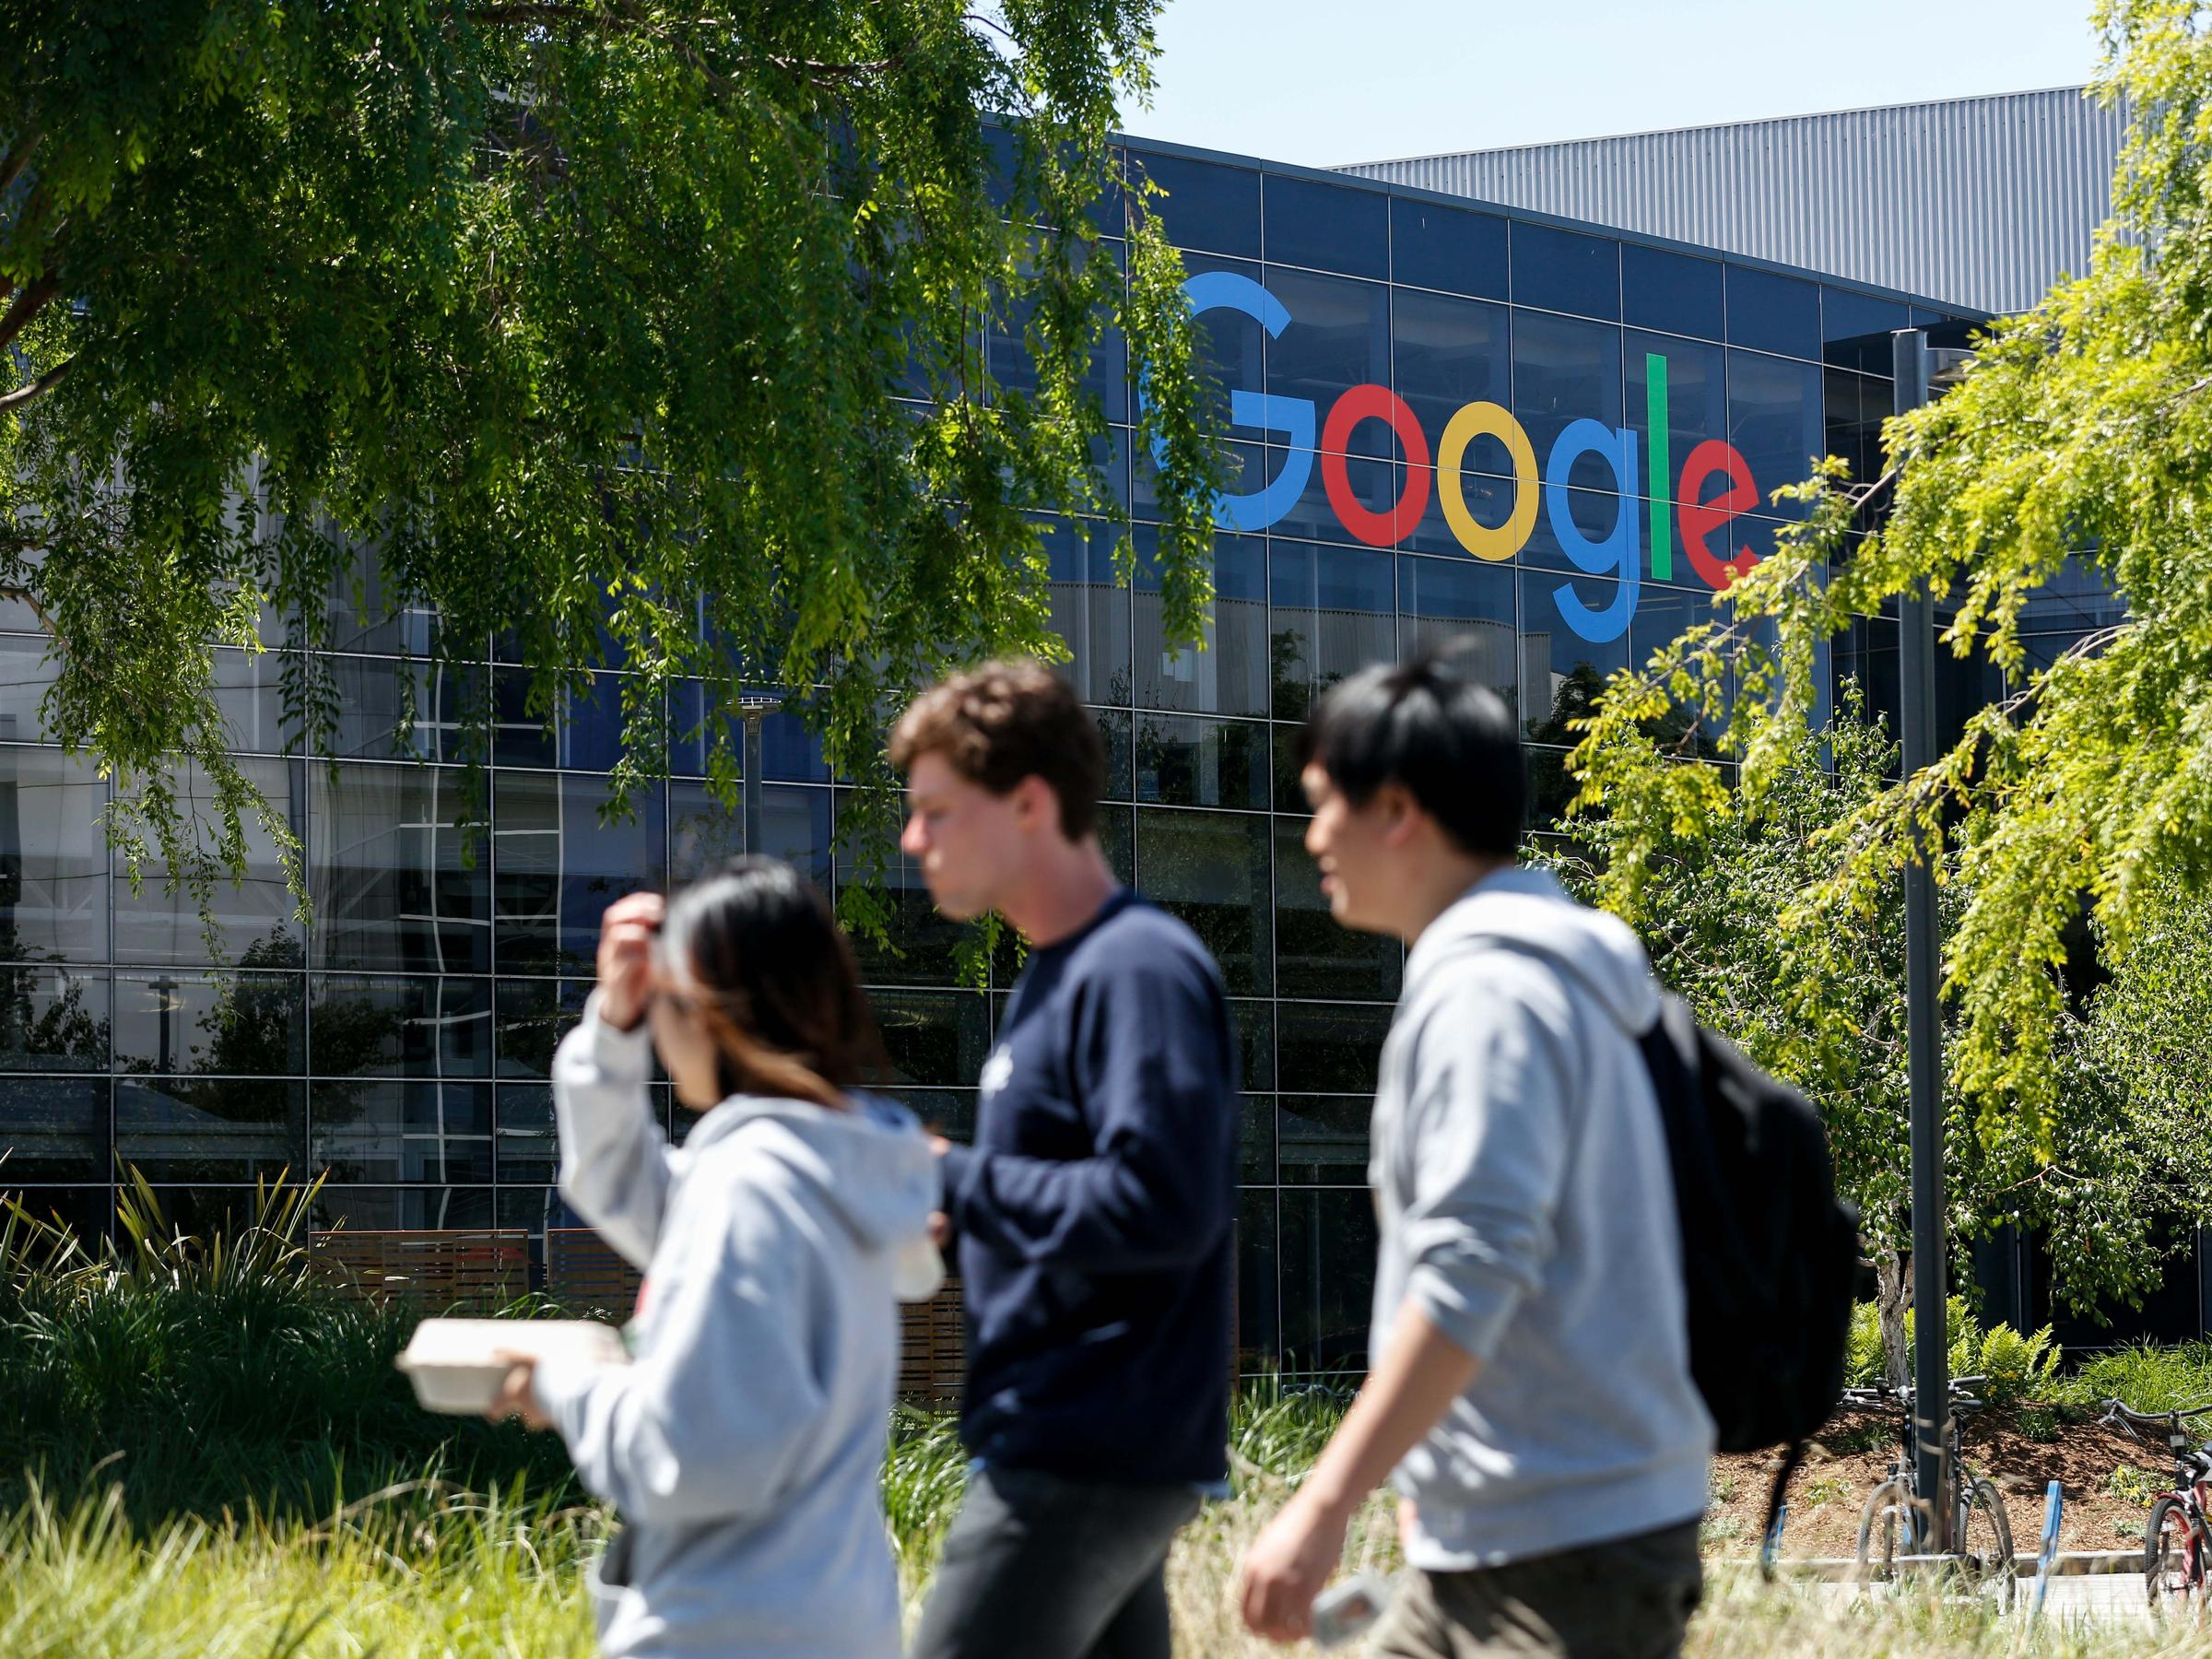 Google employee tested positive for coronavirus in Zurich